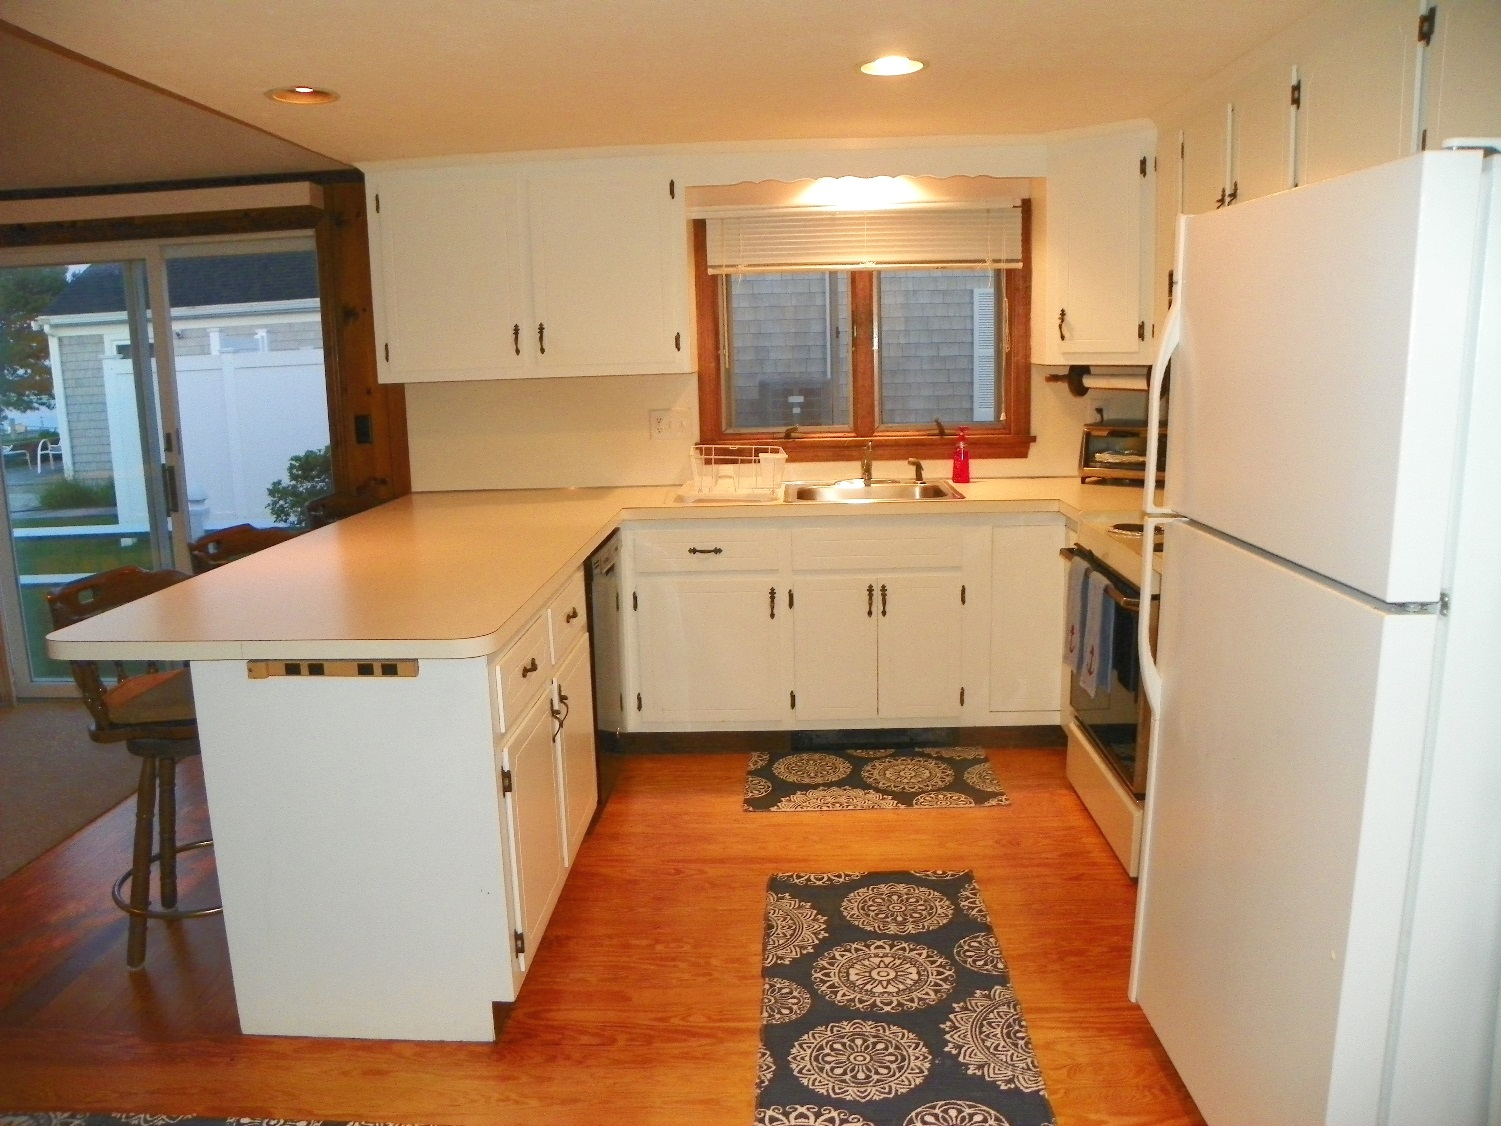 Spacious Kitchen at 6 Captain Keavy Way, West Dennis, MA for sale by Cranberry Real Estate 508-394-1700